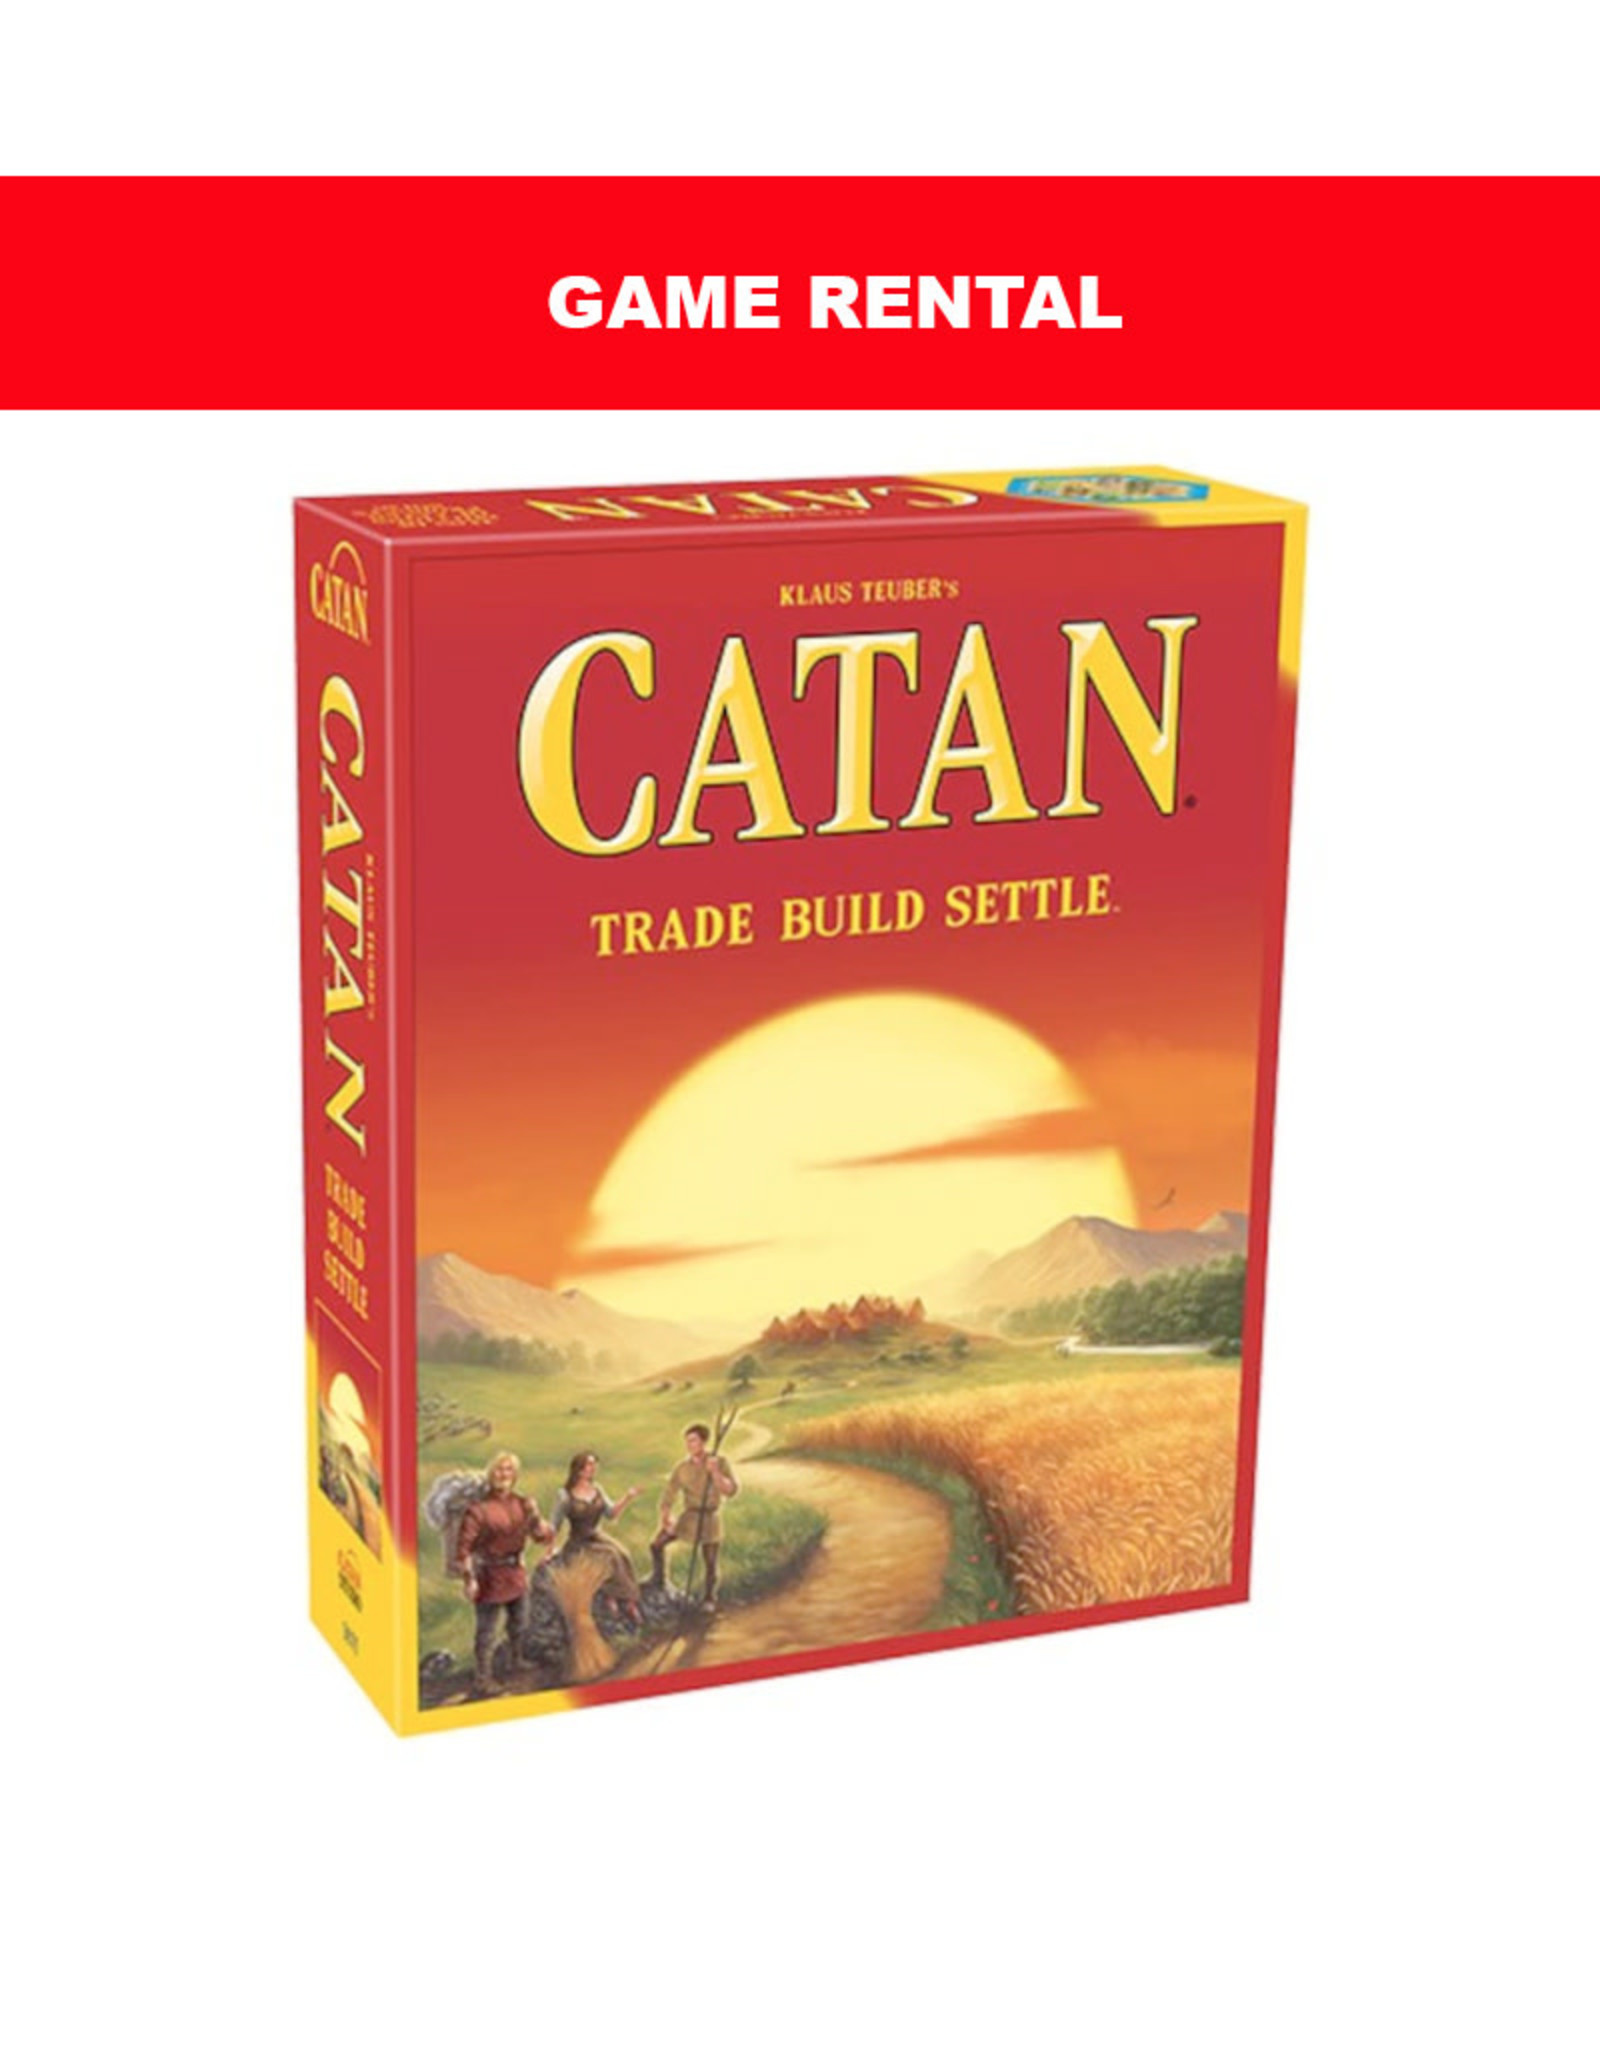 (RENT) Catan for a Day. Love it! Buy it!